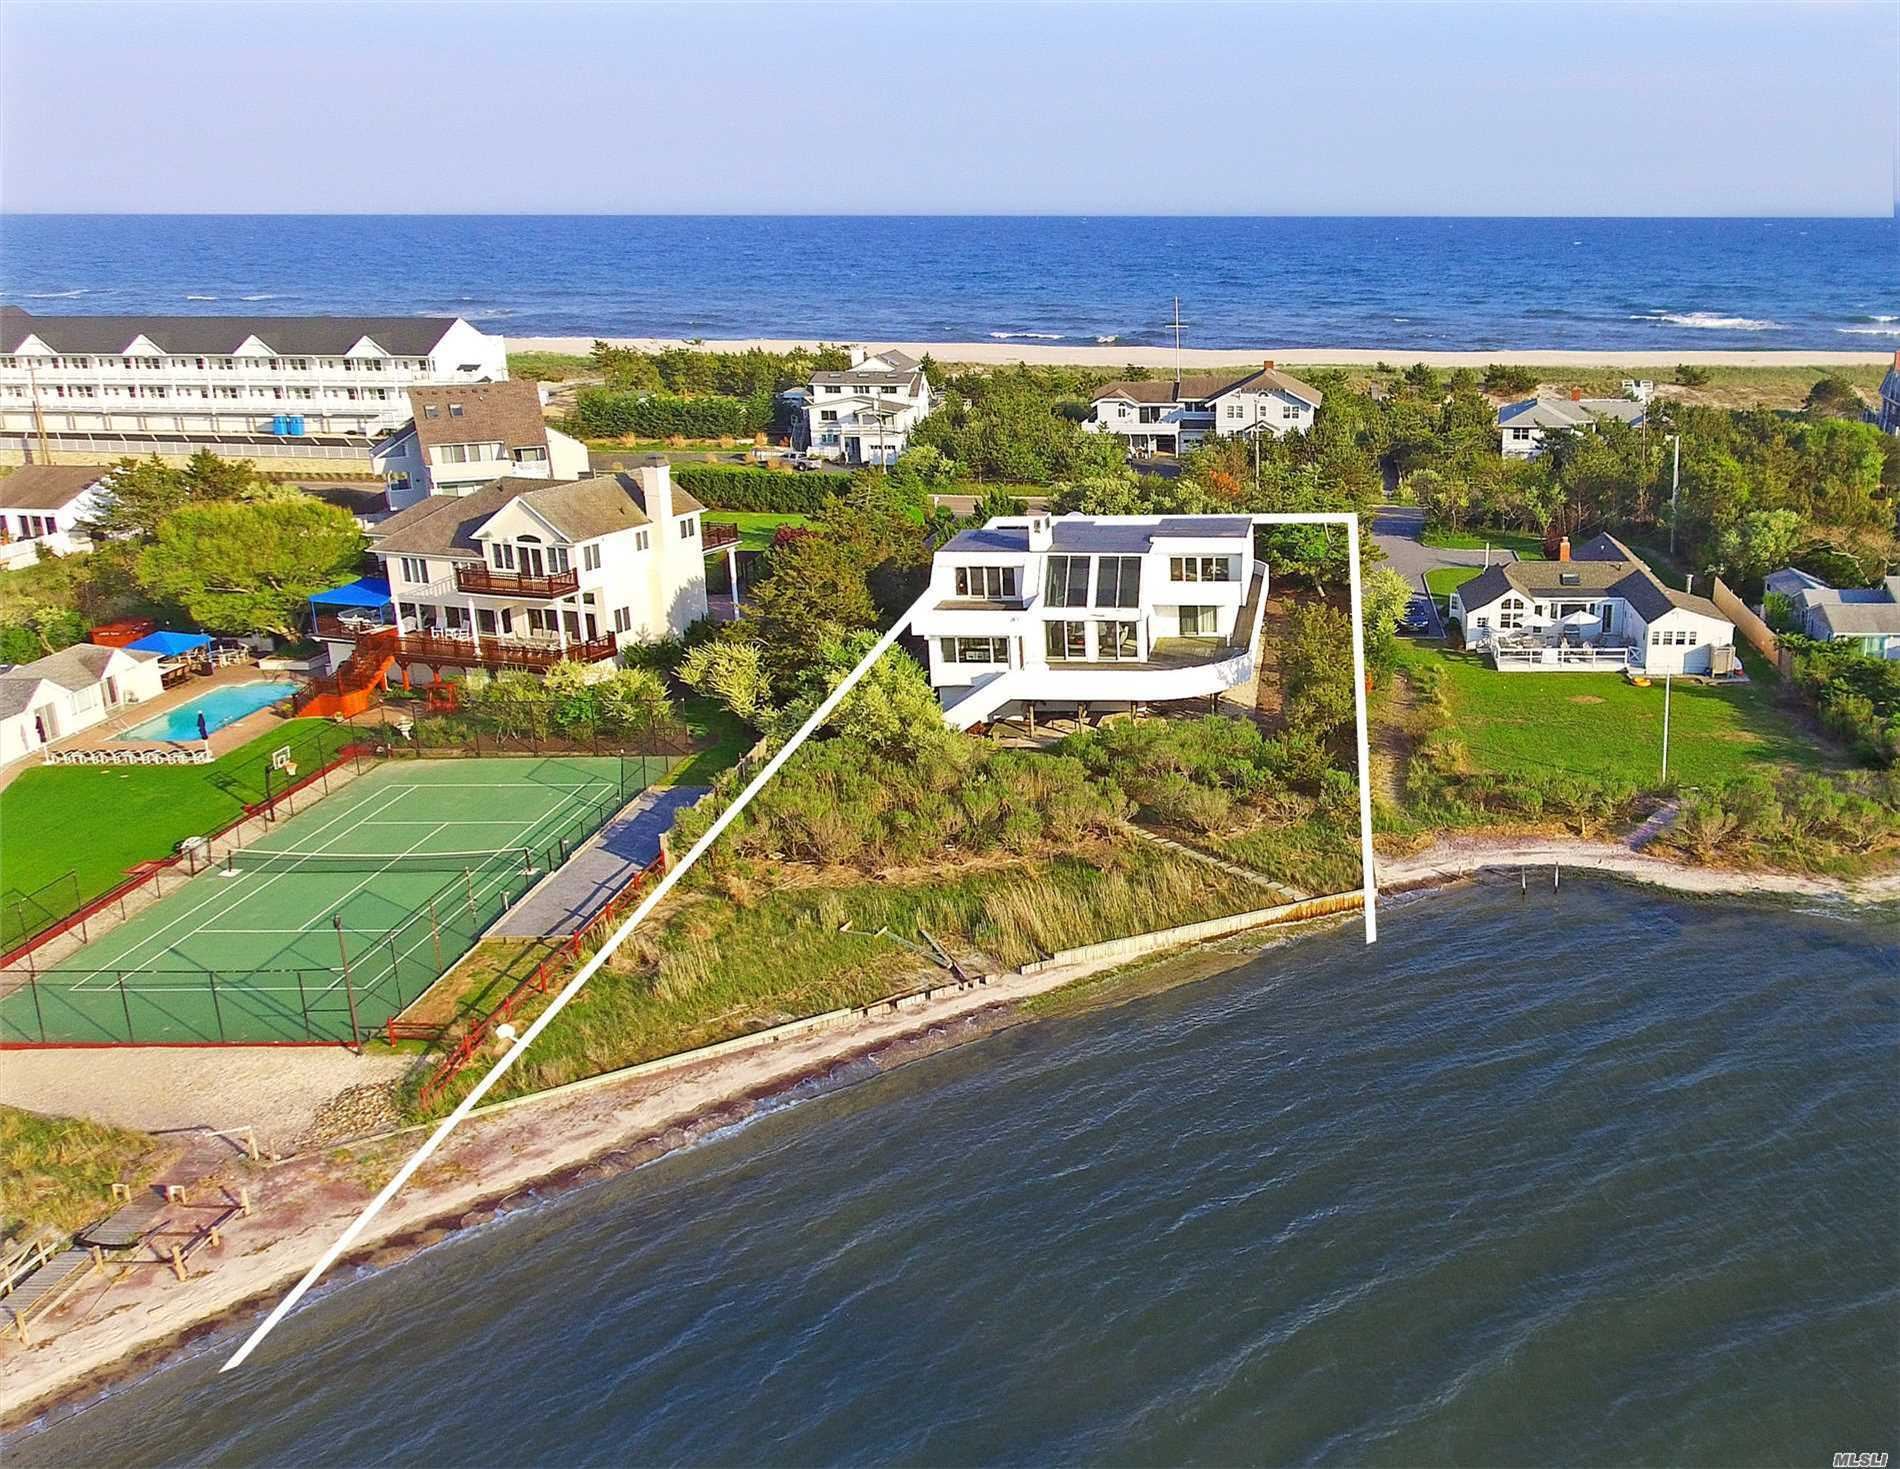 Bayfront W Pool & Ocean Access. Living Room W Wet Bar, Dining Room, Renovated Kitchen W Stainless Apl. 1st Flr 3 Guest Beds & 2 Baths. 2nd Level Junior Master W Marble Bath, Master Suite W Renovated Bath & Private Deck Overlooking The Pool. Both Suites Also Have Decks Overlooking The Bay. Deeded Row To Ocean, Bulkheading, 2 Car Garage, & Ample Decking.